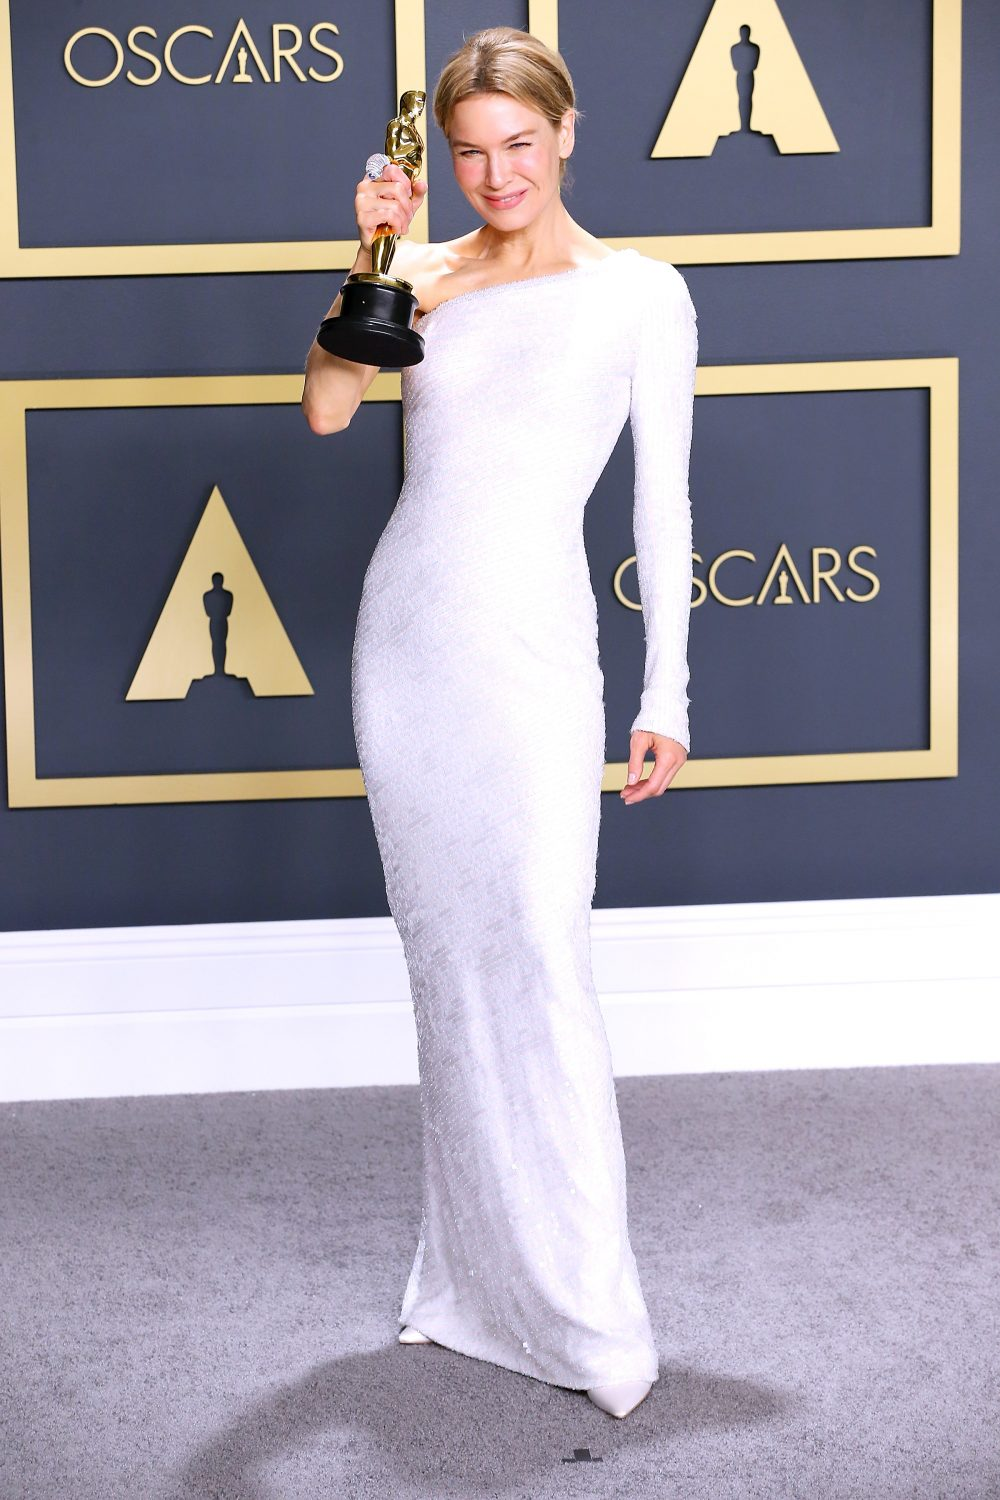 92nd Annual Academy Awards - Press Room